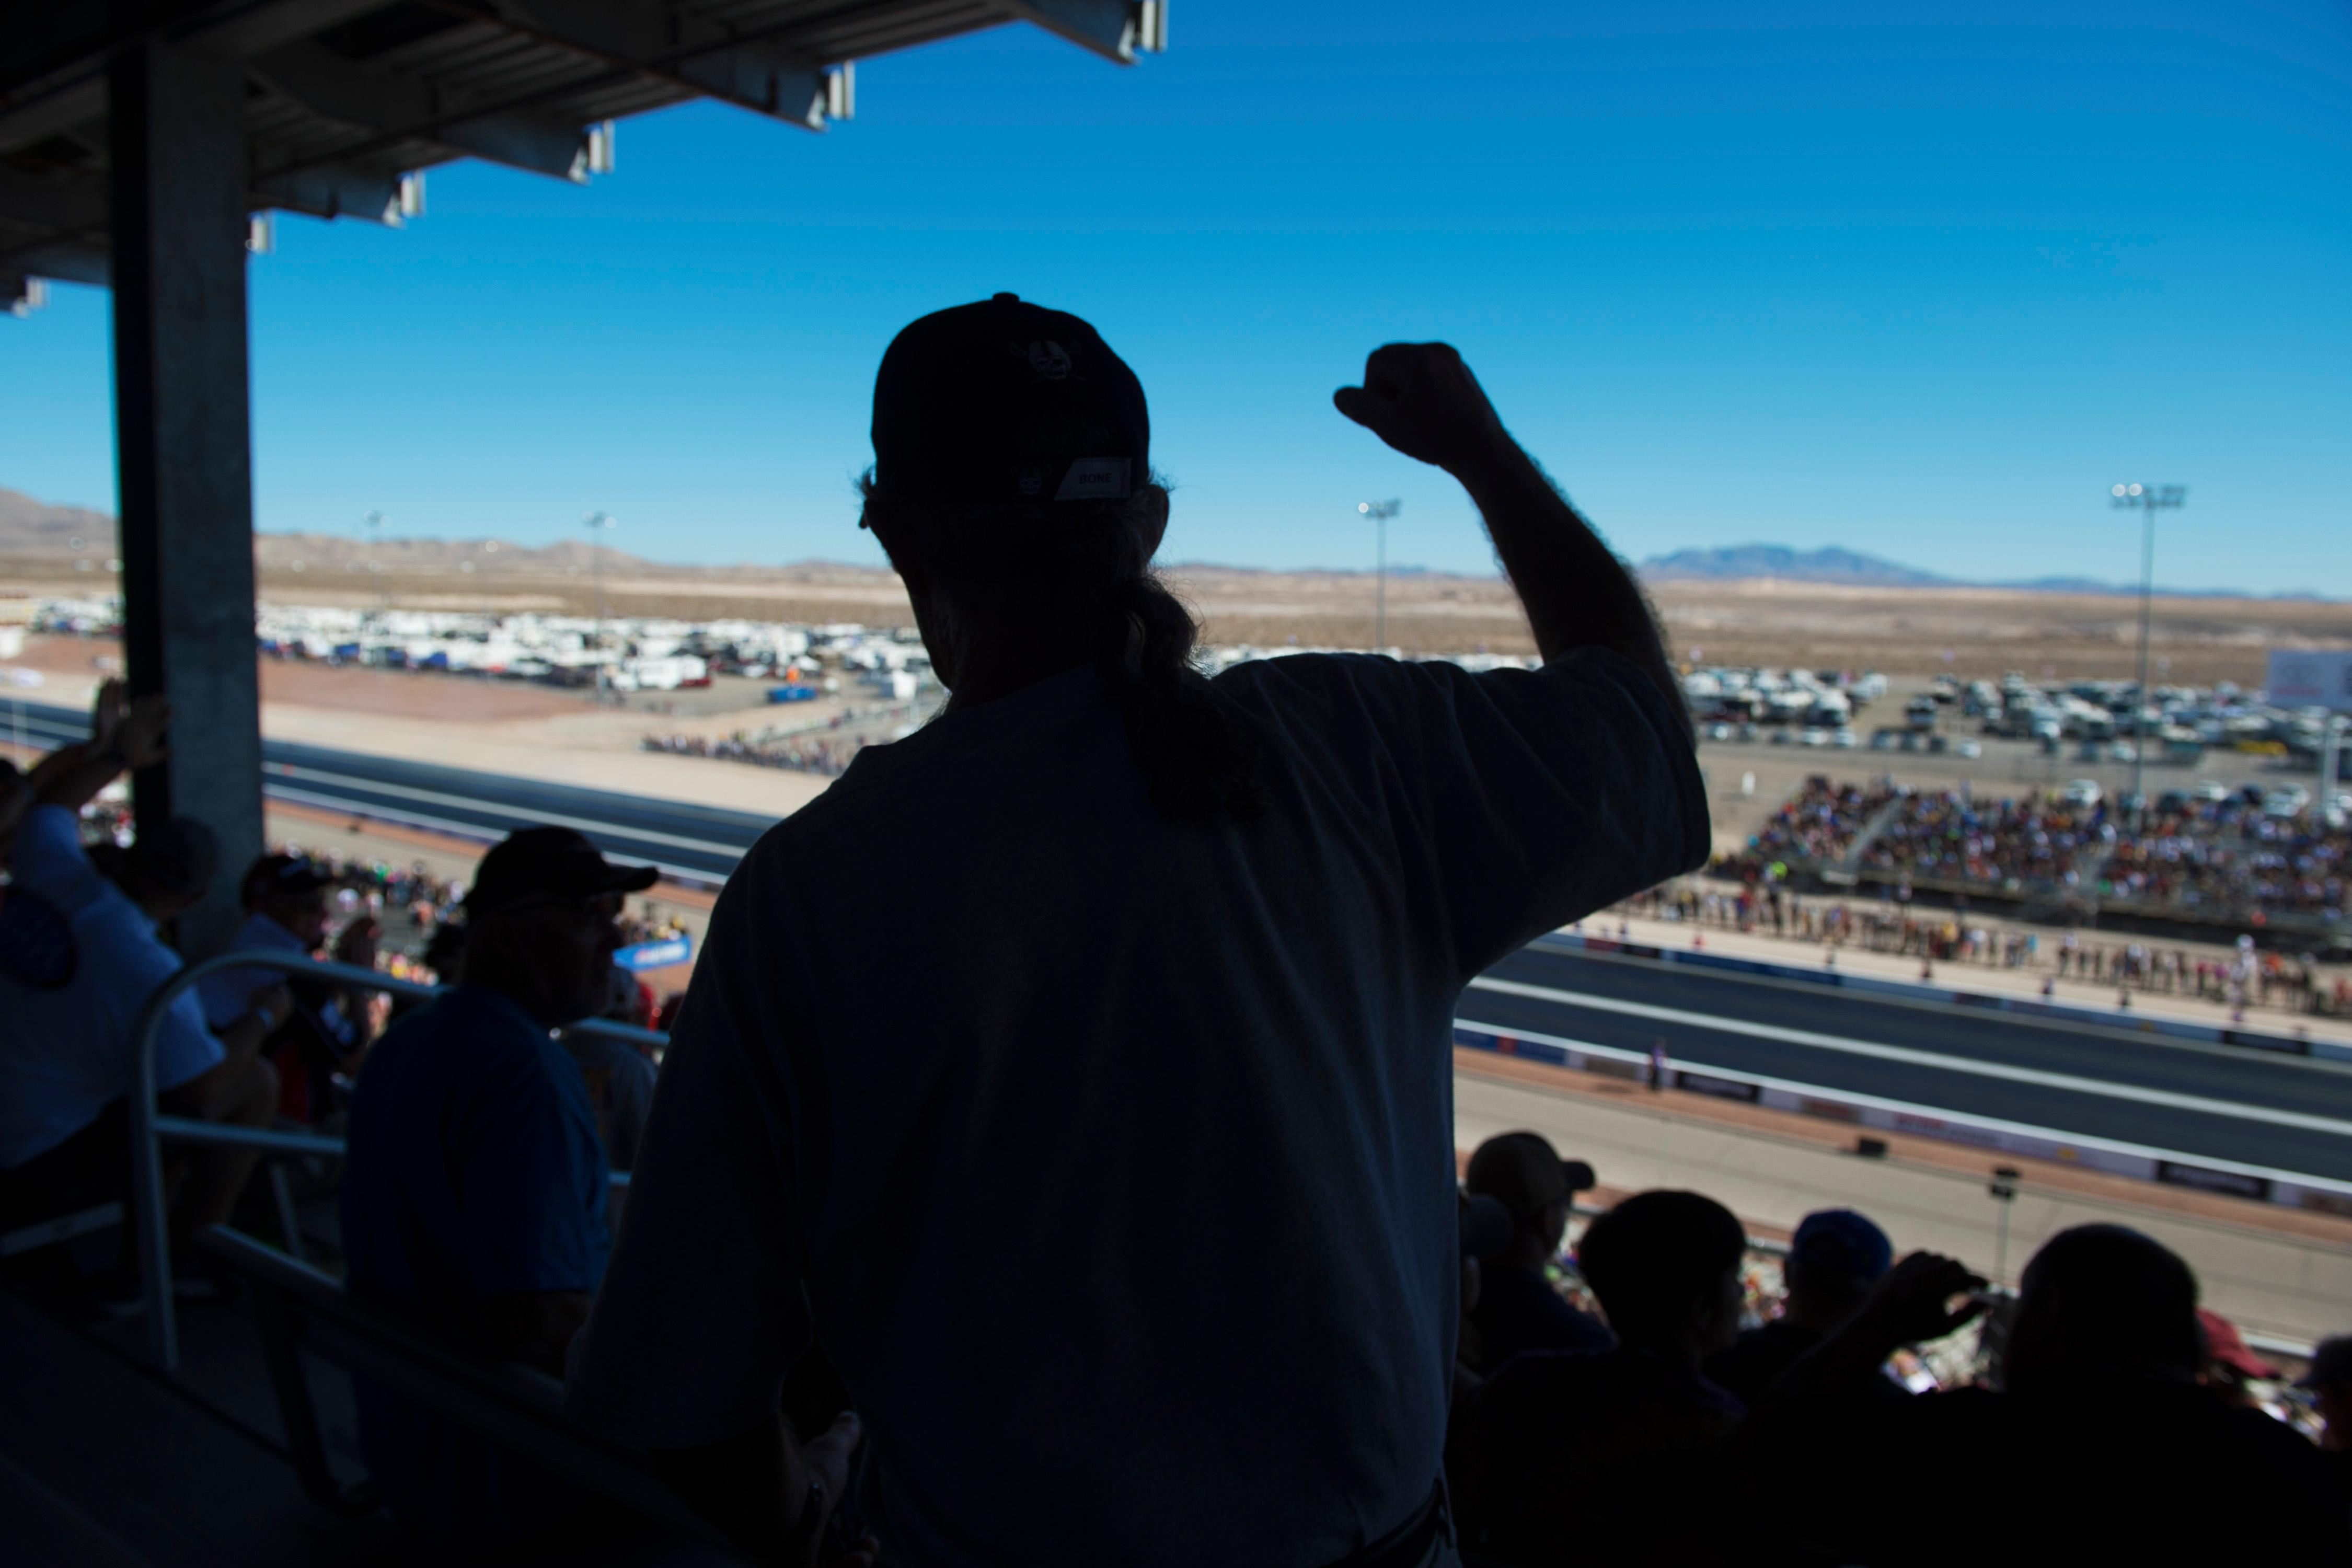 A fan cheers on a favorite driver at the NHRA Toyota Nationals Sunday, October 29, 2017, at The Strip at the Las Vegas Motor Speedway. CREDIT: Sam Morris/Las Vegas News Bureau